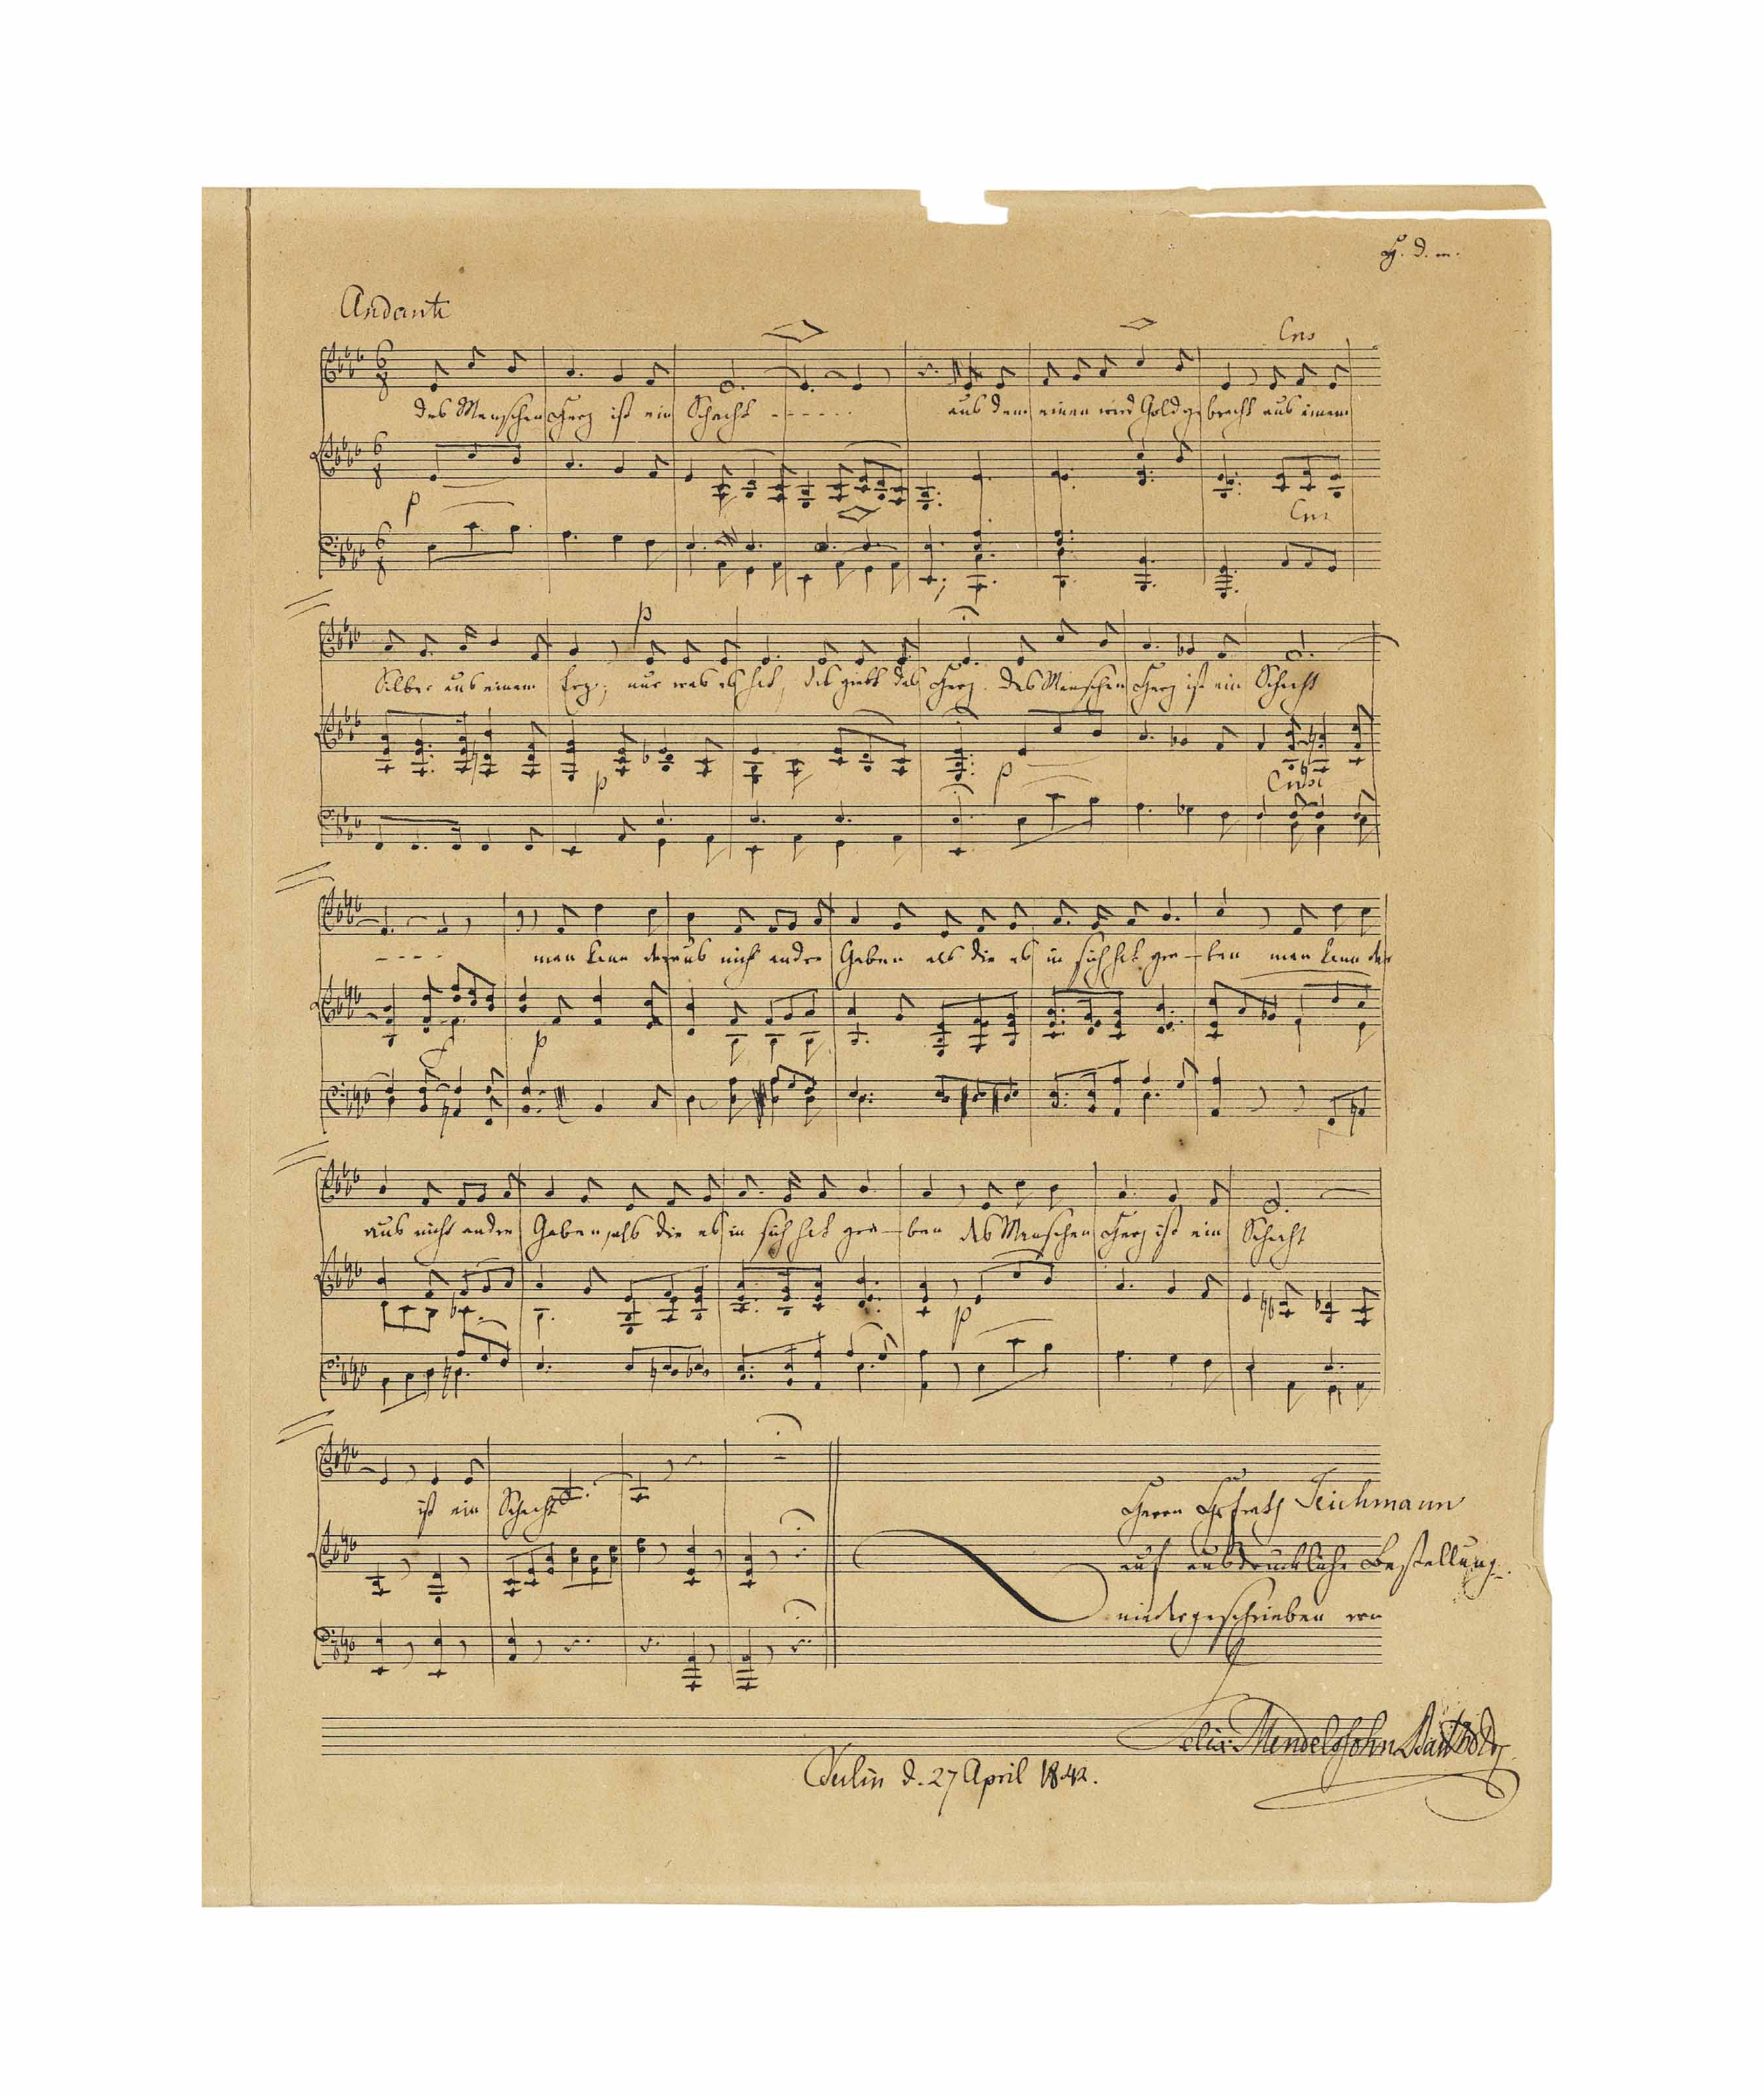 "MENDELSSOHN BARTHOLDY, Felix (1809-1847). Autograph music manuscript signed ('Felix Mendelssohn Bartholdy'), 'Lied von Rückert für eine Alt-Stimme mit Begleitung des Pianoforte', Berlin, 27 April 1842, an unpublished song, 'Des Menschen Herz ist ein Schacht', 29 bars for voice and piano in 5 systems of three staves, in A flat major, a neat, typically elegant manuscript with only two minor textual corrections, inscribed to Privy Councillor [Johann Valentin] Teichmann, 'auf ausdrückliche Bestellung niedergeschrieben' ('written at his express request'), superscribed in autograph with the invocation 'H[ilf] d[u] m[ir]', on one page, large 4to (302 x 228mm), on a bifolium, autograph title page (somewhat browned, splitting affecting a strip to upper margin of music page, the title page somewhat marked and soiled); with an autograph letter signed by Mendelssohn to Teichmann, Leipzig, 3 May 1842, asking him not to circulate the song, 'weil ich es nur auf Ihren Wunsch und nur für Sie geschrieben habe', although as Teichmann has already shown it to the bookseller [Wilhelm] Besser, he may give him a copy, one page, 8vo (231 x 142mm), laid onto verso of title (minor splitting and loss to lower corners). Provenance: T.O. Weigel, Catalogue d'une belle collection de lettres autographes dont la vente publique aura lieu à Leipzig, 12 Juin 1862, lot 490; catalogue of List & Franke, 23 January 1872, 139, no. 2569.   A LOST MENDELSSOHN SONG. Since its tantalising appearance in two Leipzig auction catalogues in 1862 and 1872, the song has become something of a classic case of a lost Mendelssohn work. The text is drawn from the second stanza of Rückert's poem 'Das Unveränderliche'. The recipient of the song, Johann Valentin Teichmann (1791-1860), was active for more than forty years as 'geheimer Secretär' in the office of the general management of the royal theatre in Berlin, for which his published Literarische Nachlass is an important source.  He lived on an upper floor at the Mendelssohn Bartholdy house at Leipzigerstrasse in Berlin from 1828 to 1831. Literature: Leipziger Ausgabe der Werke Felix Mendelssohn Bartholdys (Deutscher Verlag für Musik, 2009), vol.13 (Mendelssohn Werkverzeichniss), K.111; Ralf Wehner. '""It seems to have been lost"": On Missing and Recovered Mendelssohn Sources', The Mendelssohns. Their music in history. Oxford: OUP, 2002, pp.9 & 18."